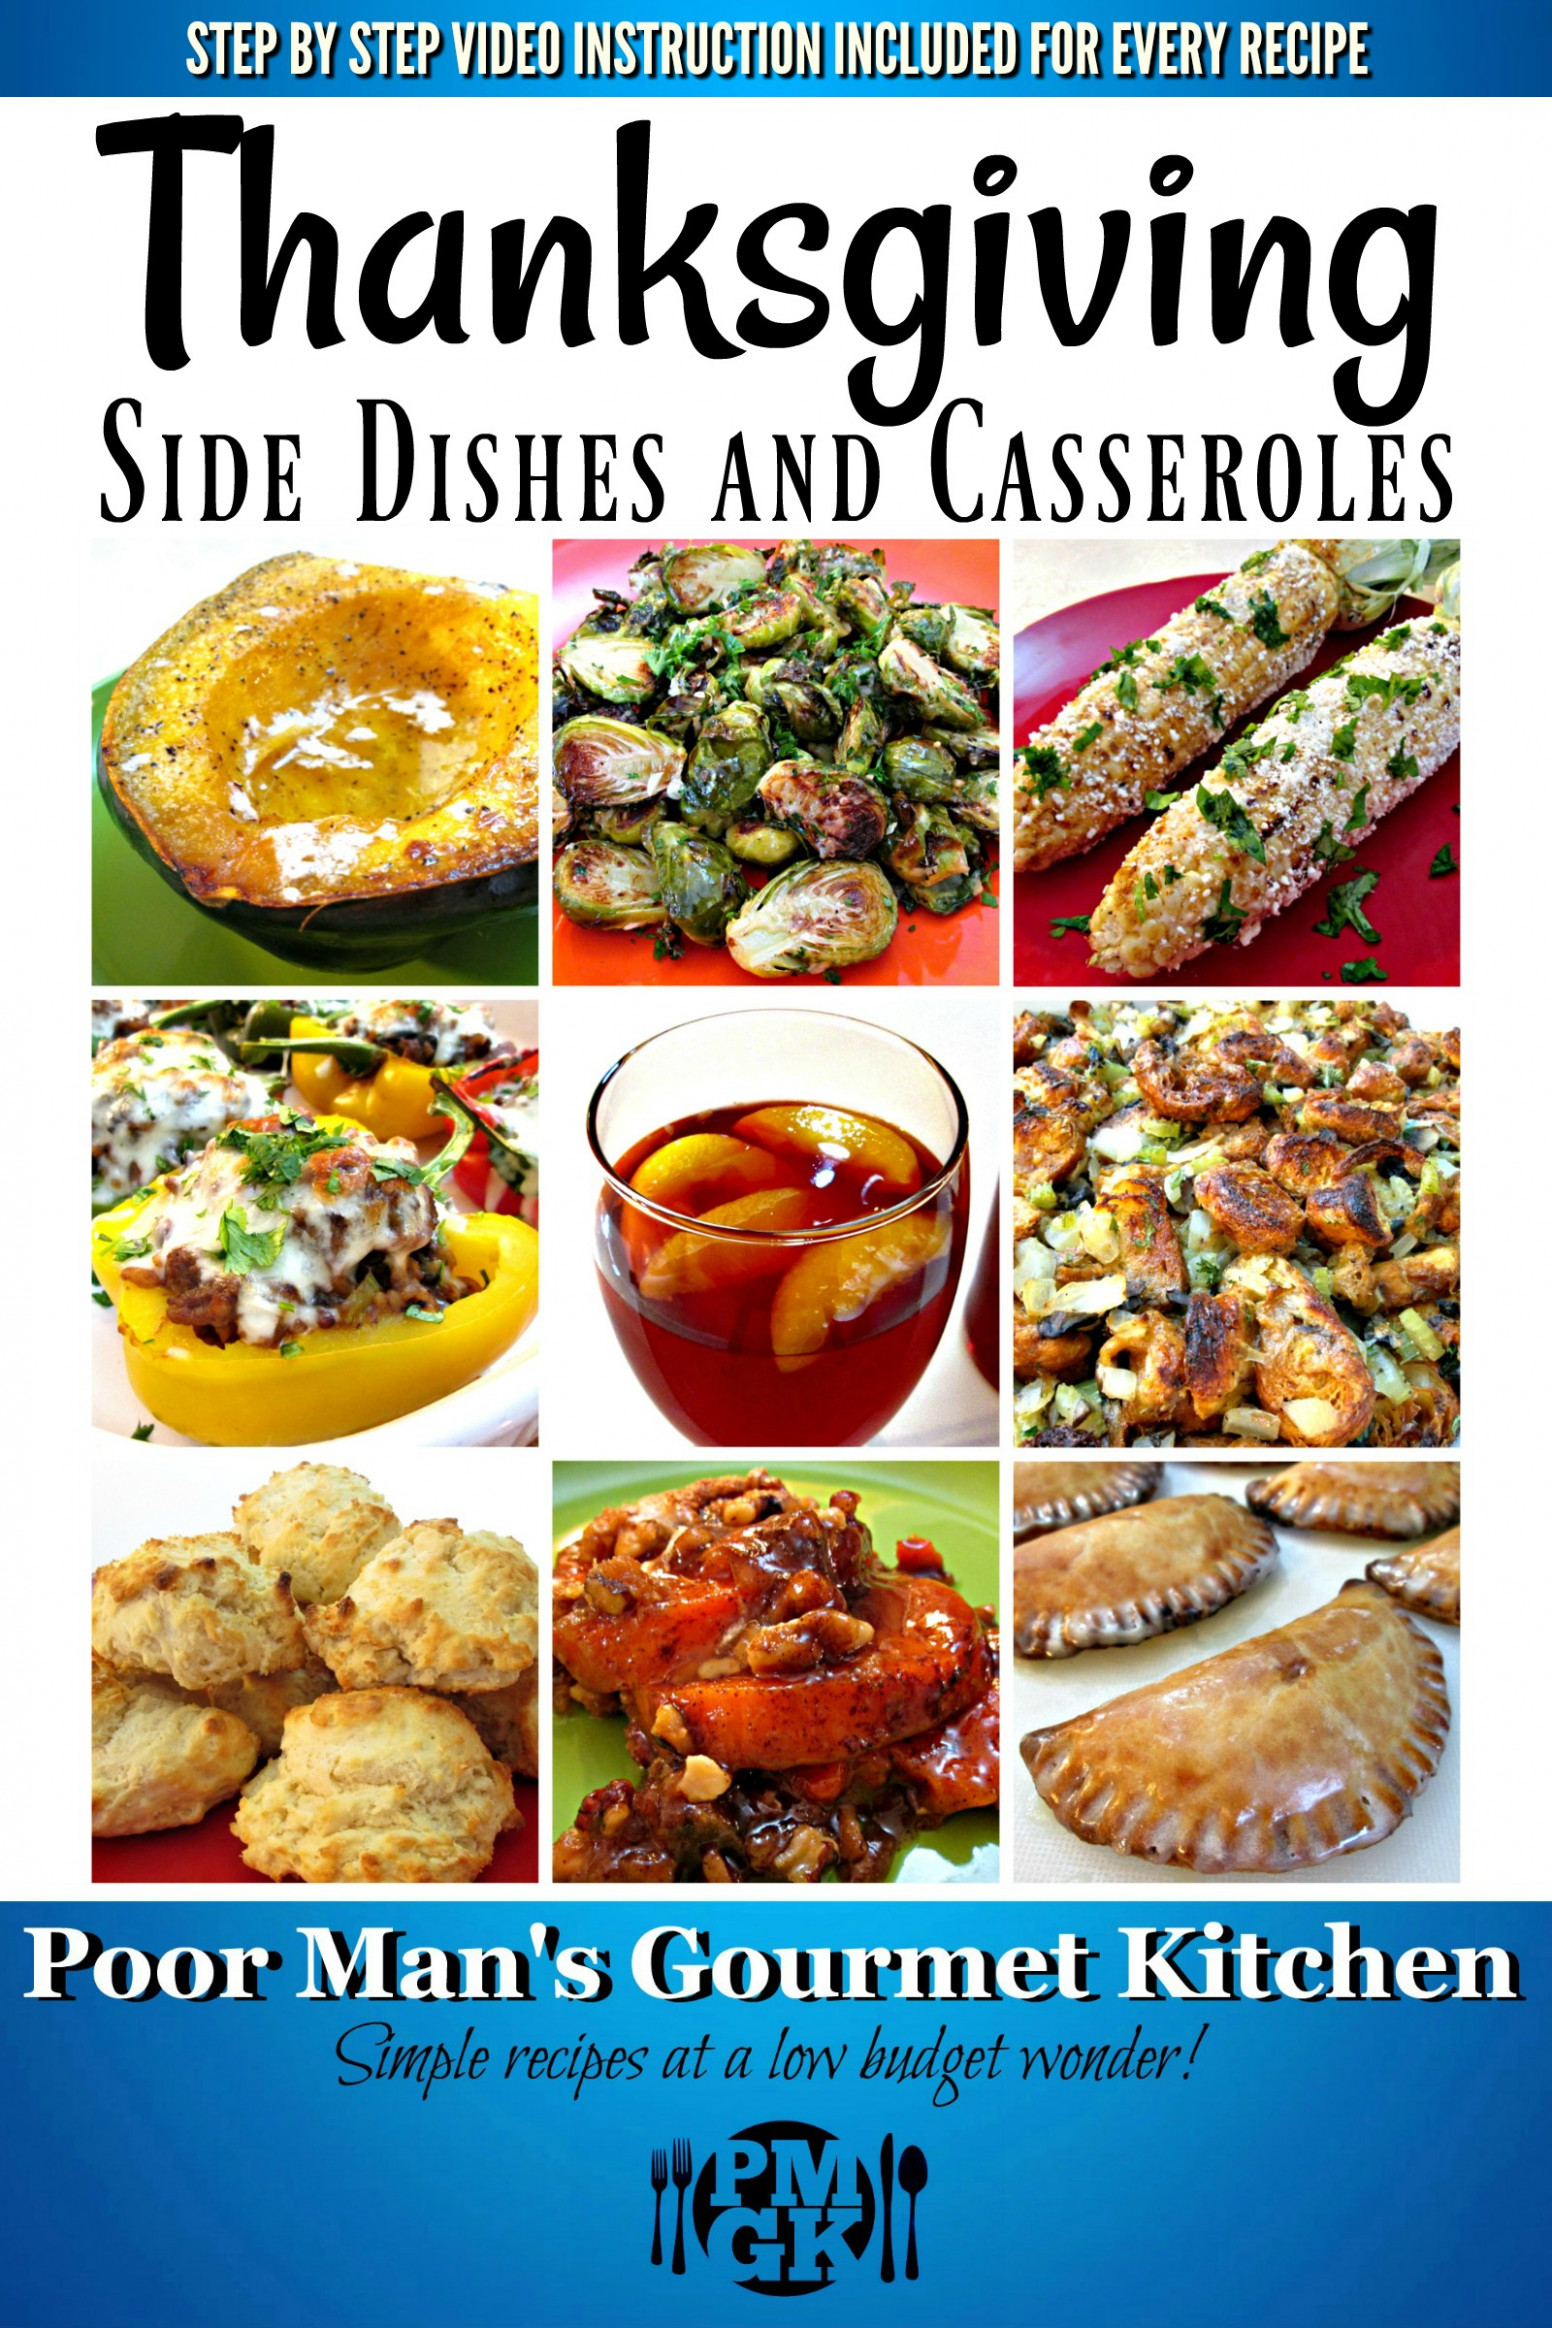 Thanksgiving Side Dishes and Casseroles eBook - vegetarian recipes youtube channel